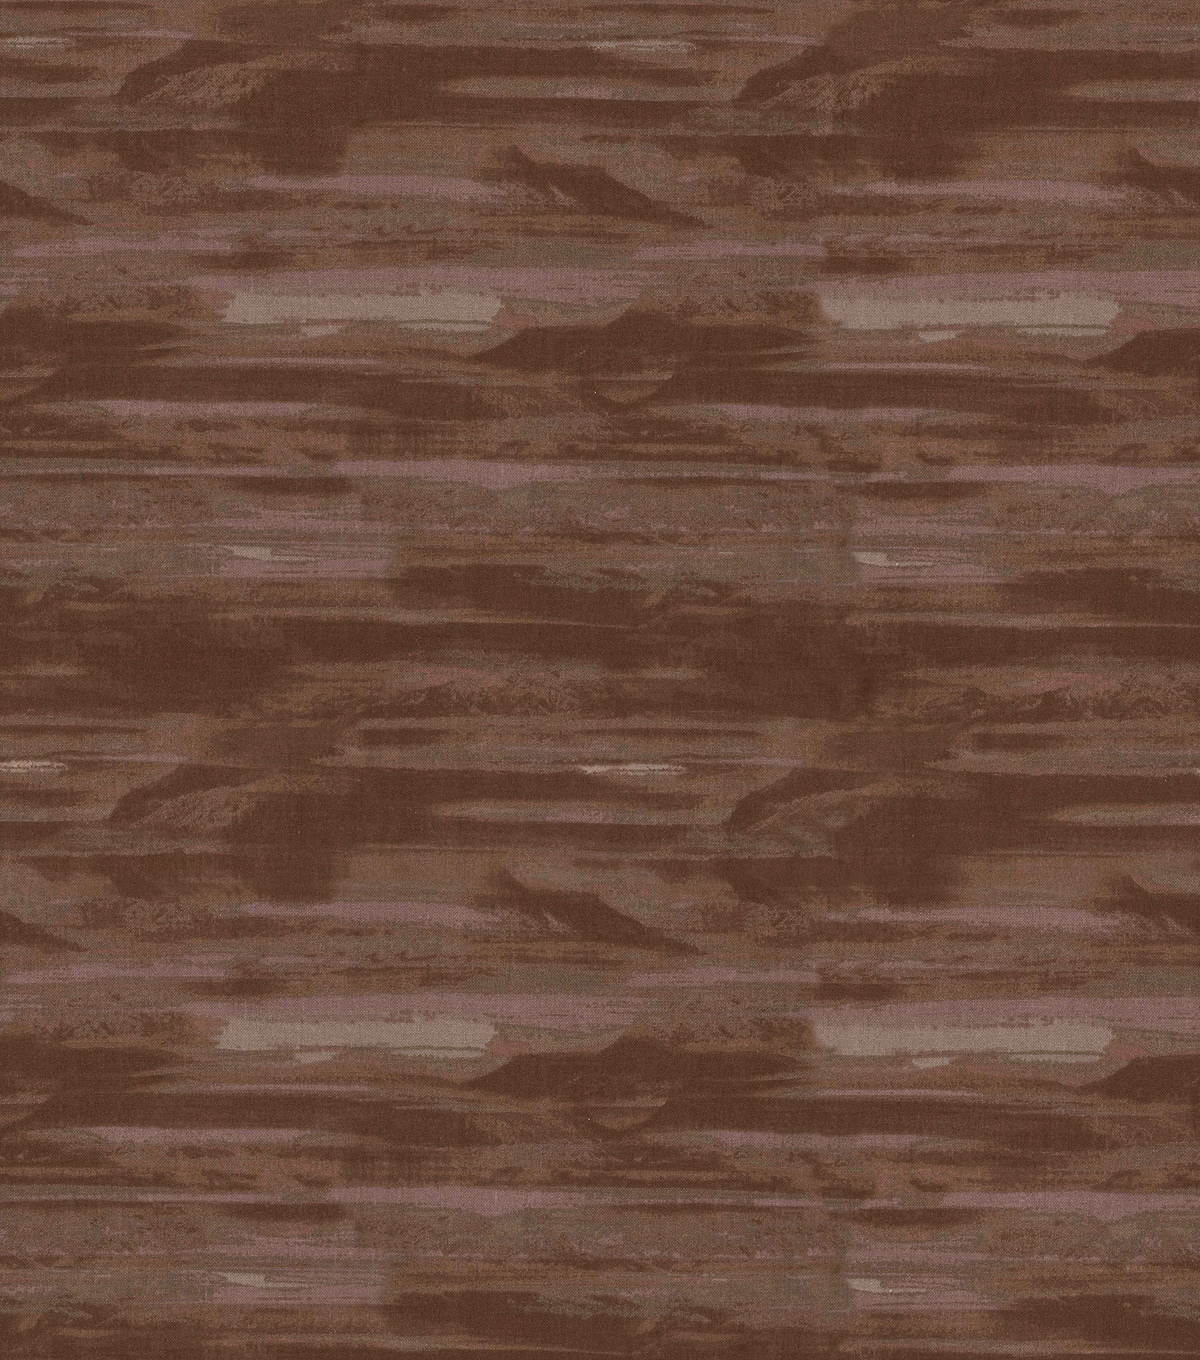 Keepsake Calico Cotton Fabric-Brown Watercolor Stripes